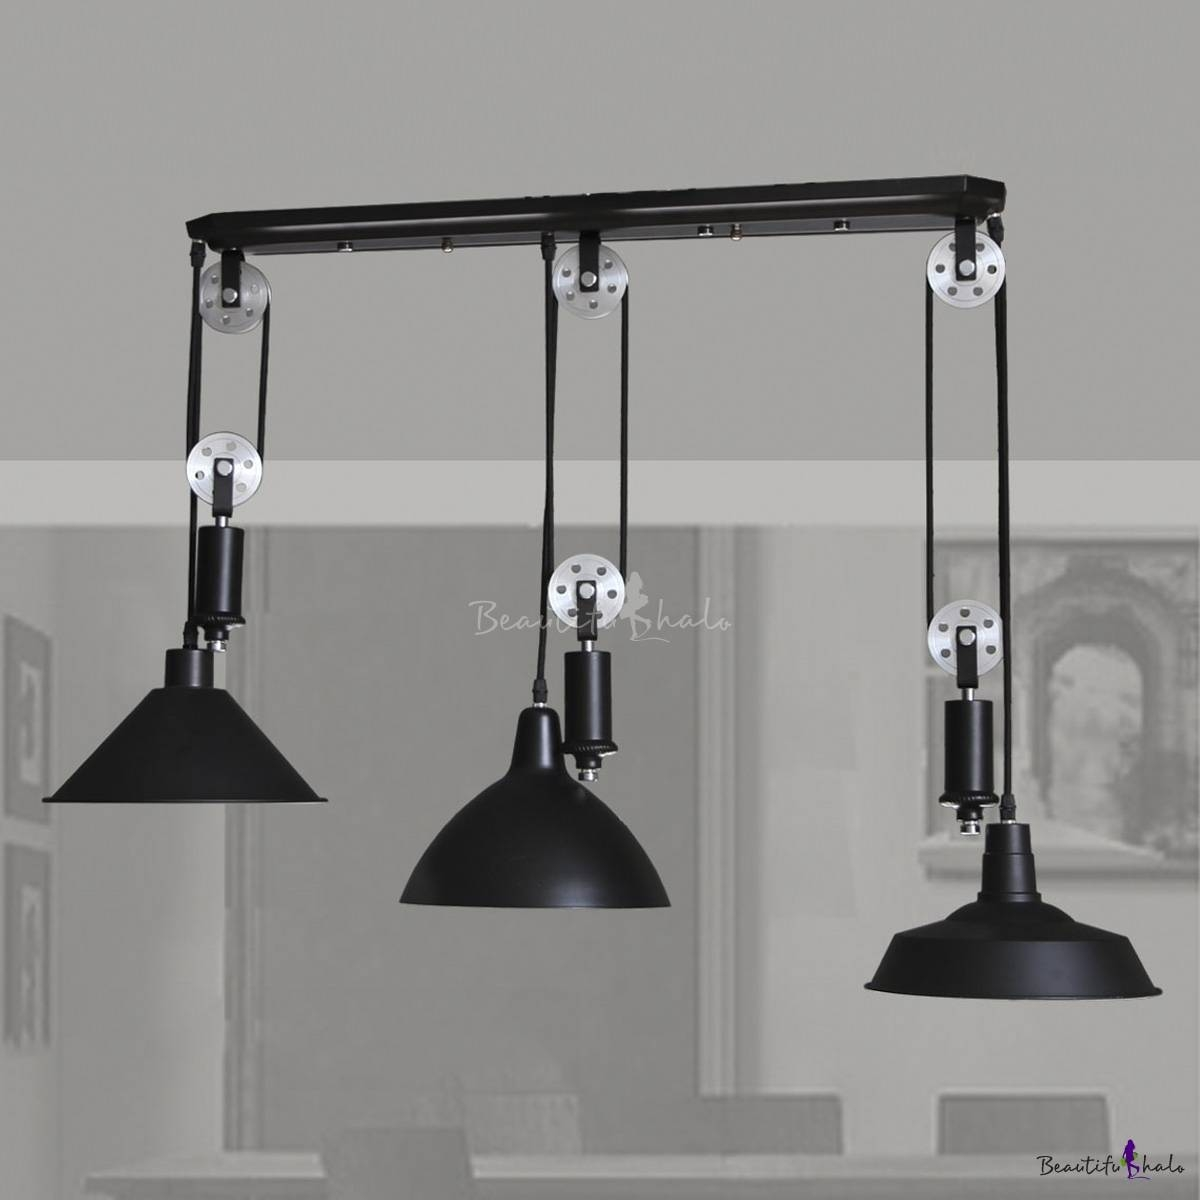 Black 3 Light Pulley Large Pendant Light - Beautifulhalo for Pulley Pendant Lights (Image 7 of 15)